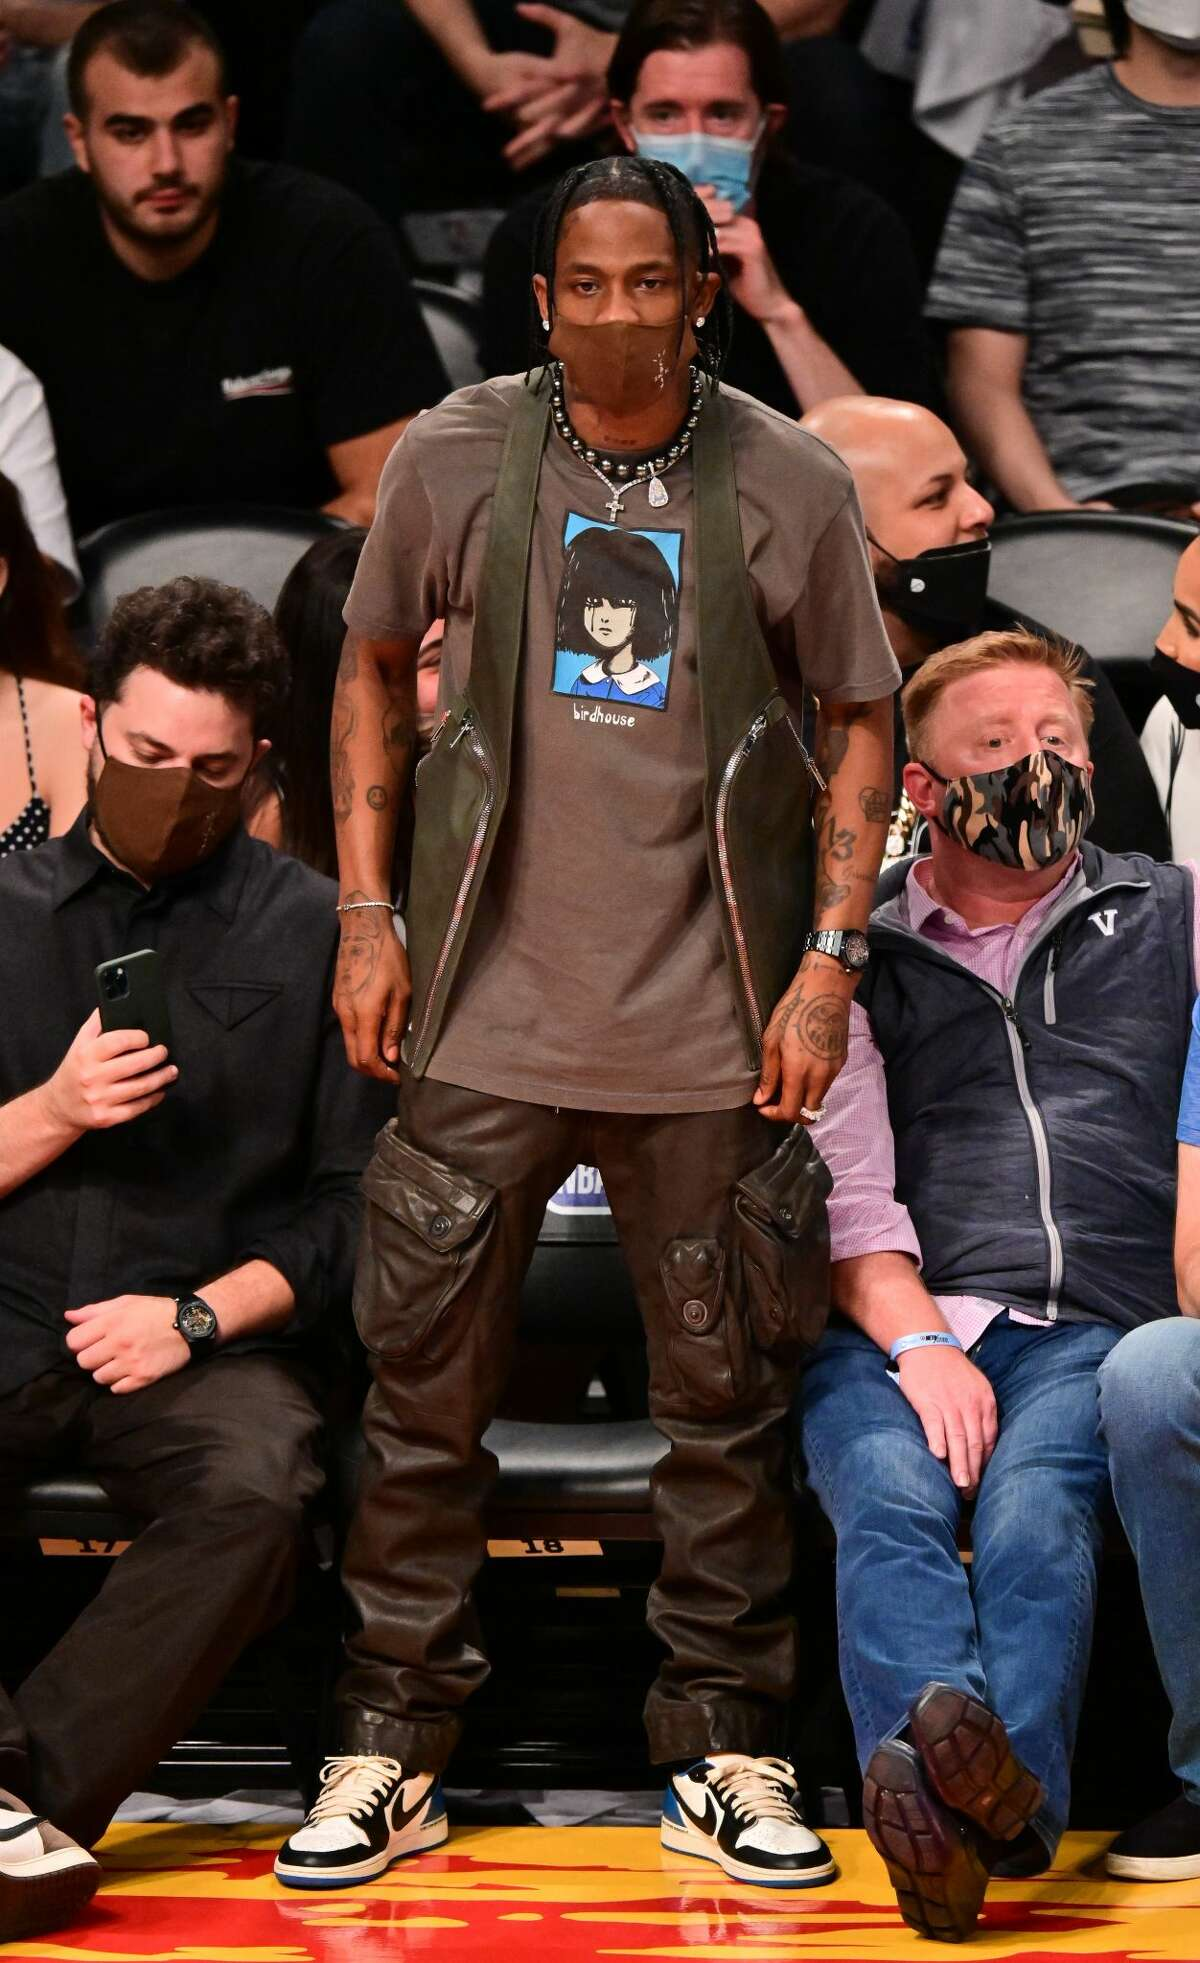 Travis Scott attends Brooklyn Nets v Milwaukee Bucks game at Barclays Center of Brooklyn on June 15, 2021 in New York City. (Photo by James Devaney/Getty Images)